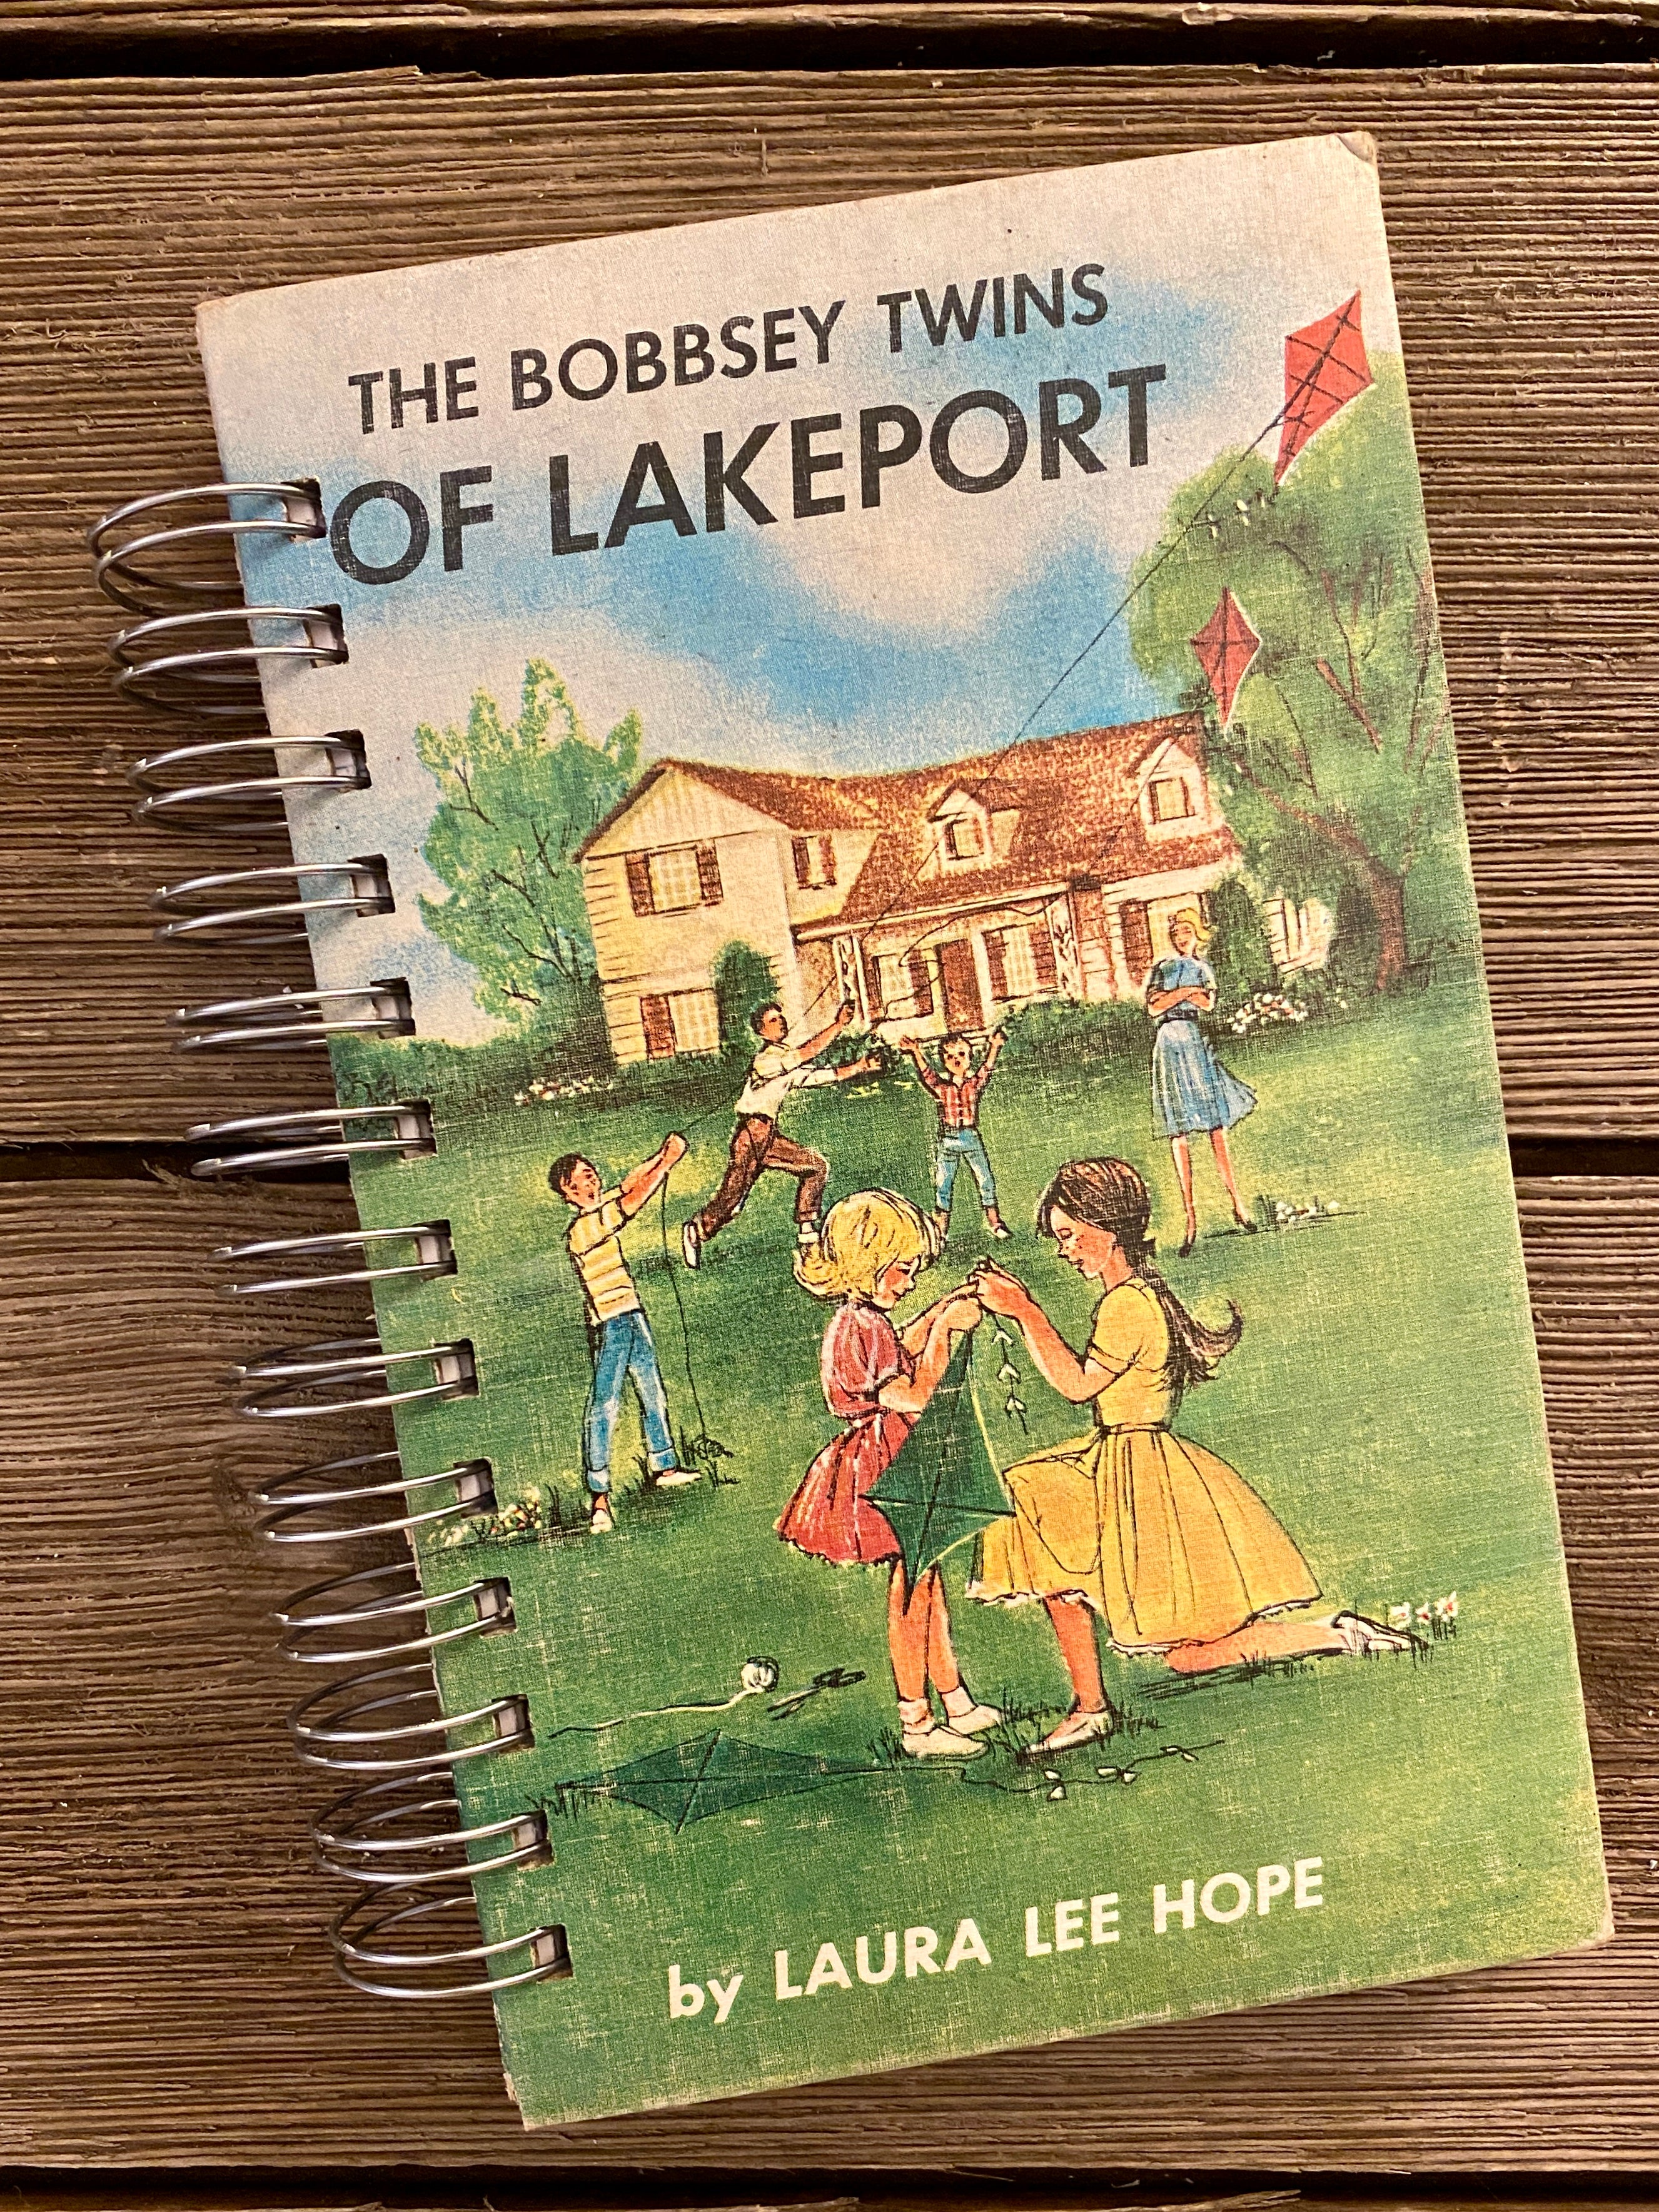 The Bobbsey Twins of Lakeport